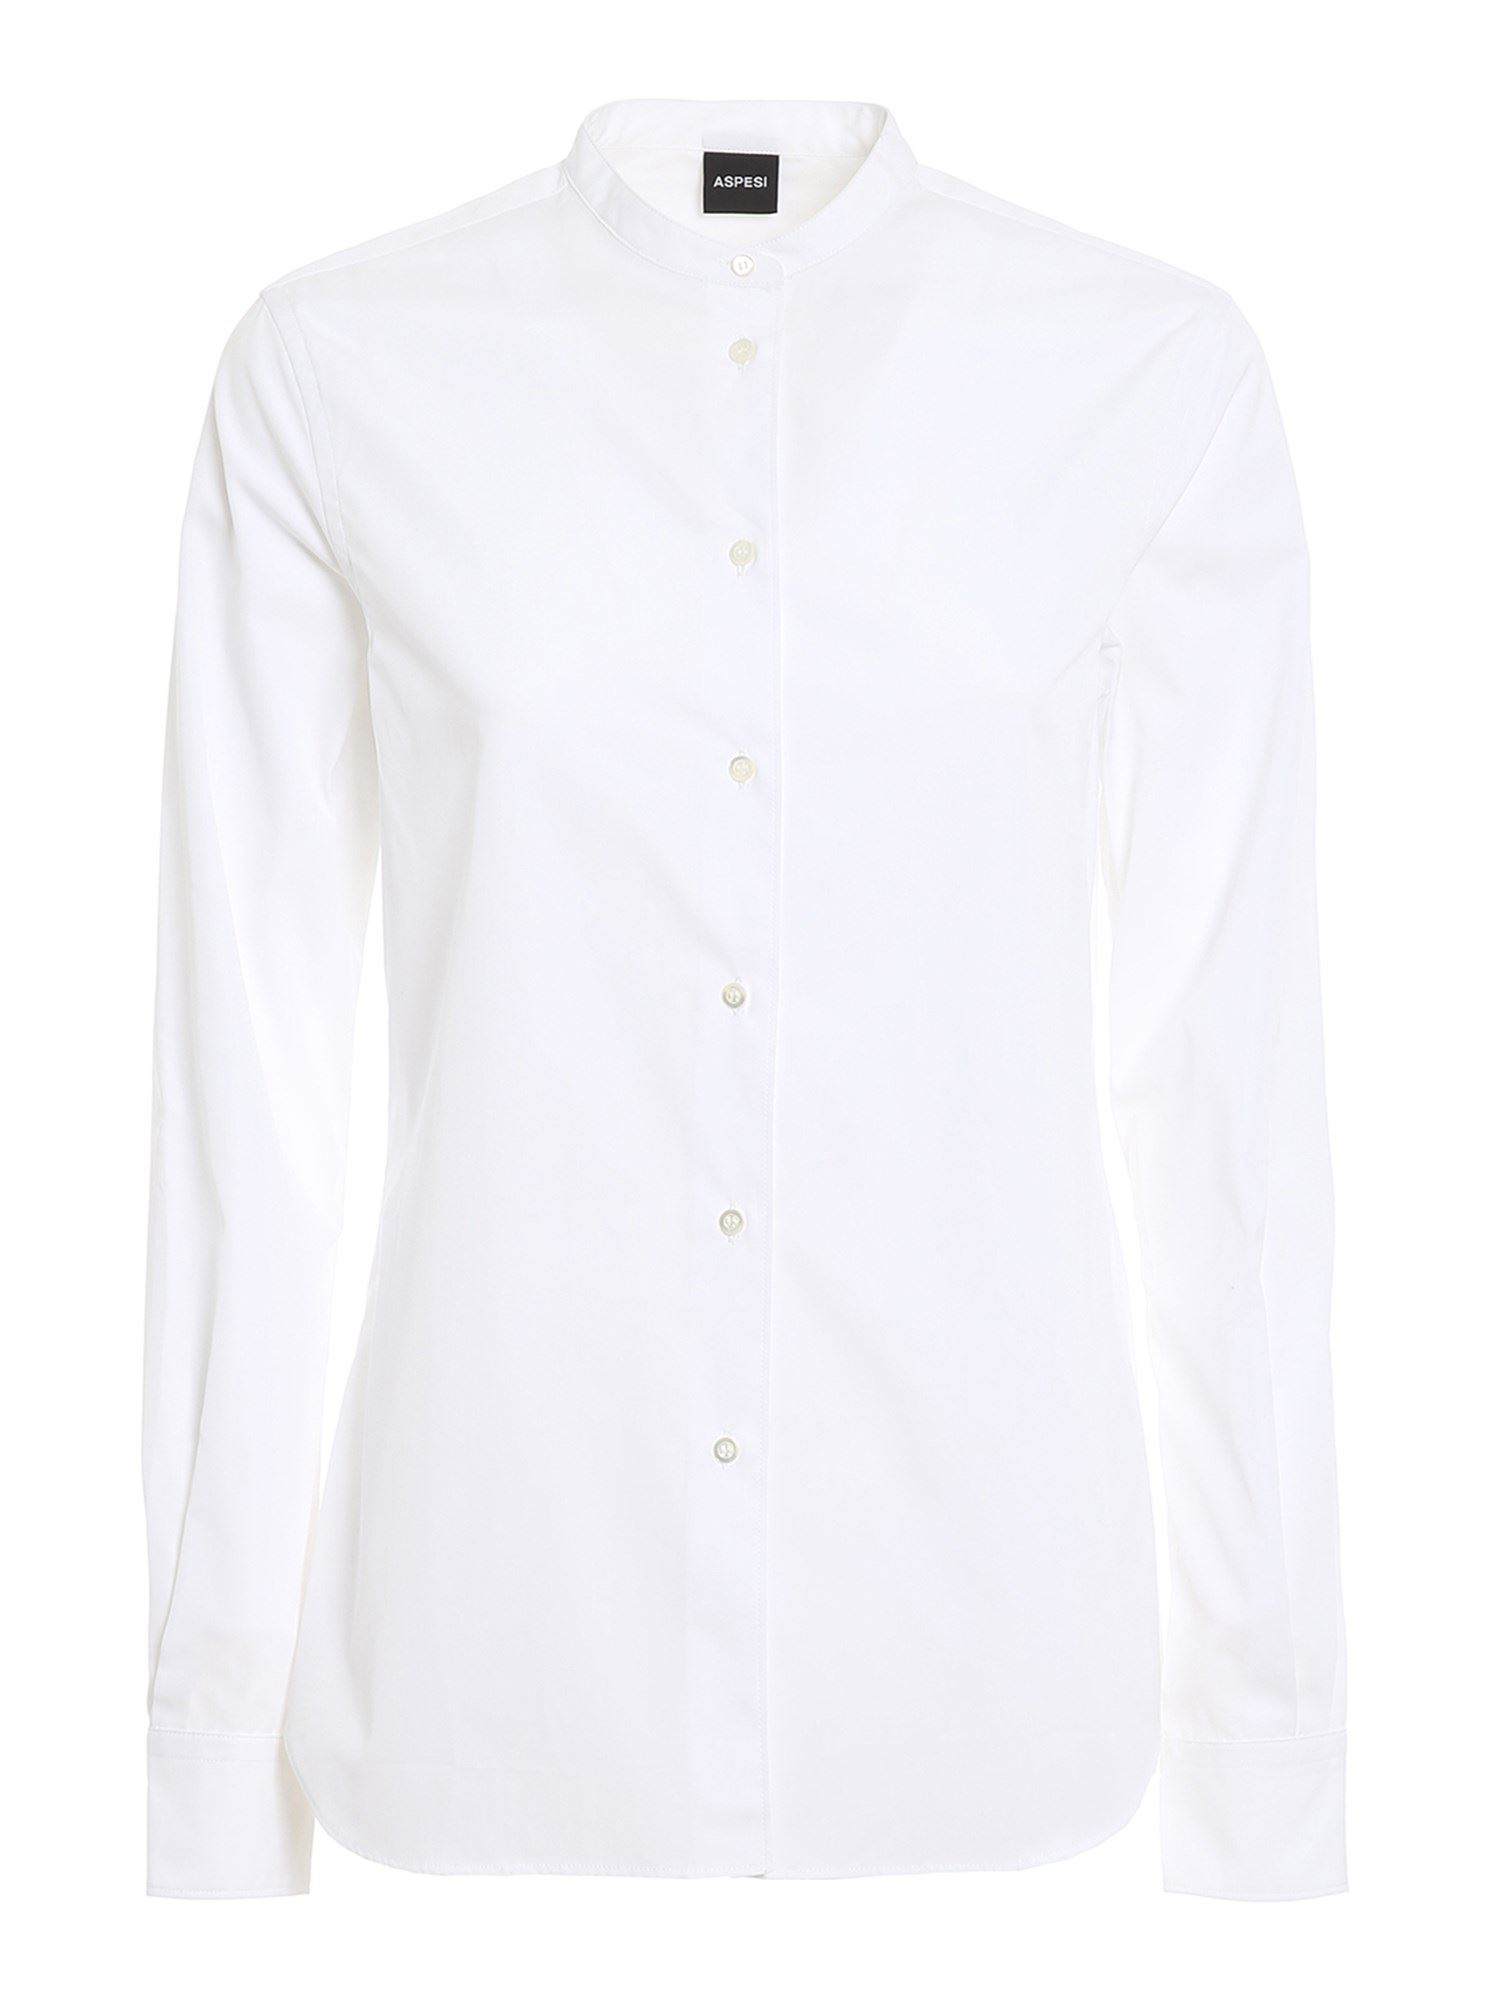 Aspesi COTTON POPLIN SHIRT IN WHITE